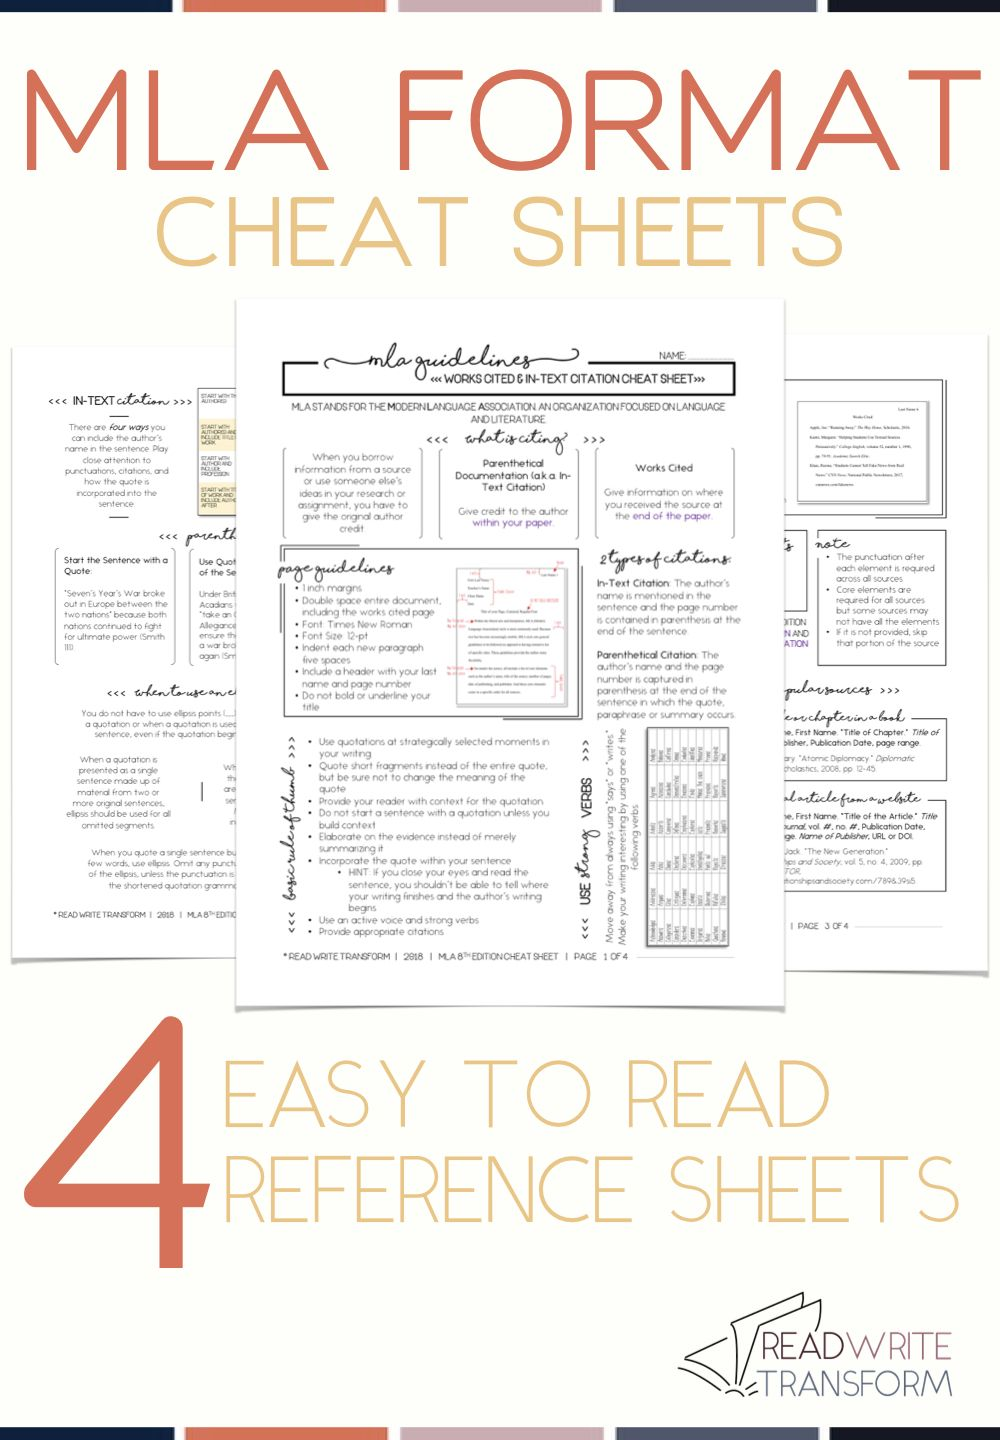 Updated 2019 Mla 8 Format Cheat Sheet With Images Mla Format